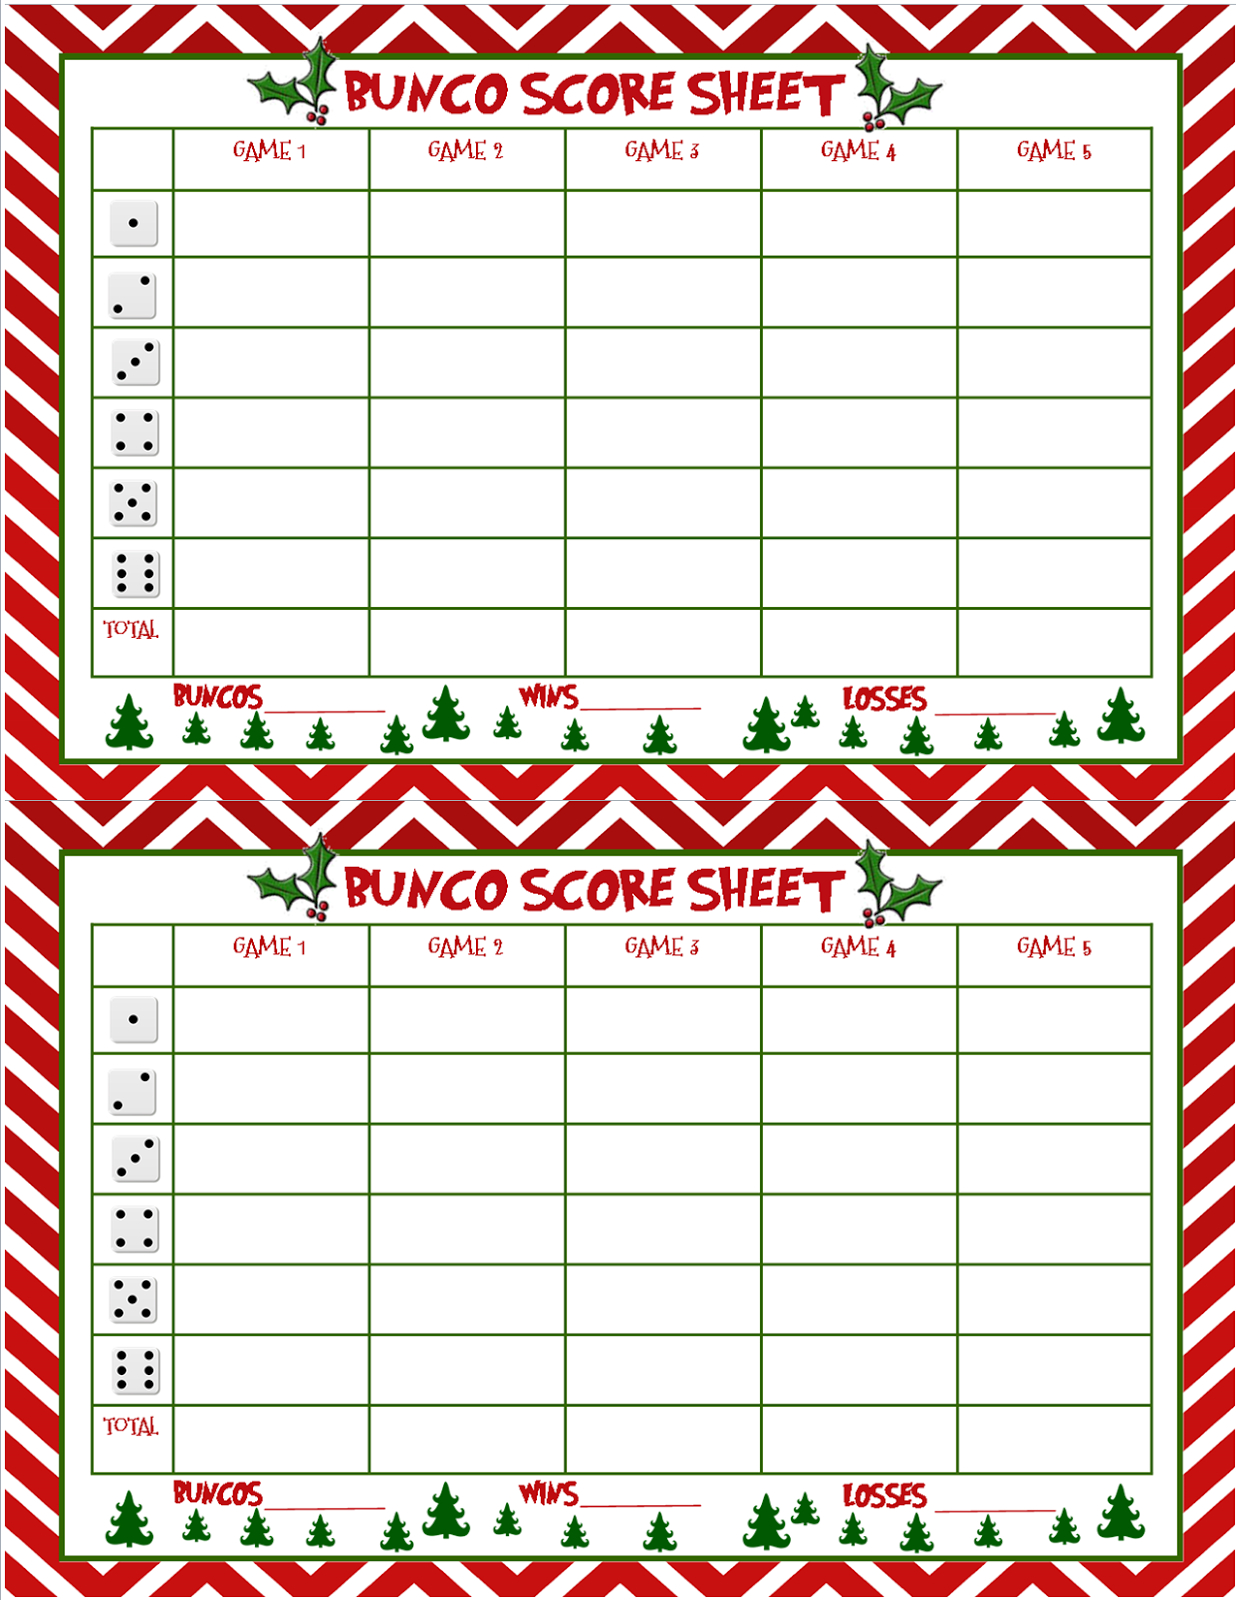 I Seemed To Have Skipped Making A Bunco Score Sheet For Thanksgiving - Free Printable Bunco Score Sheets